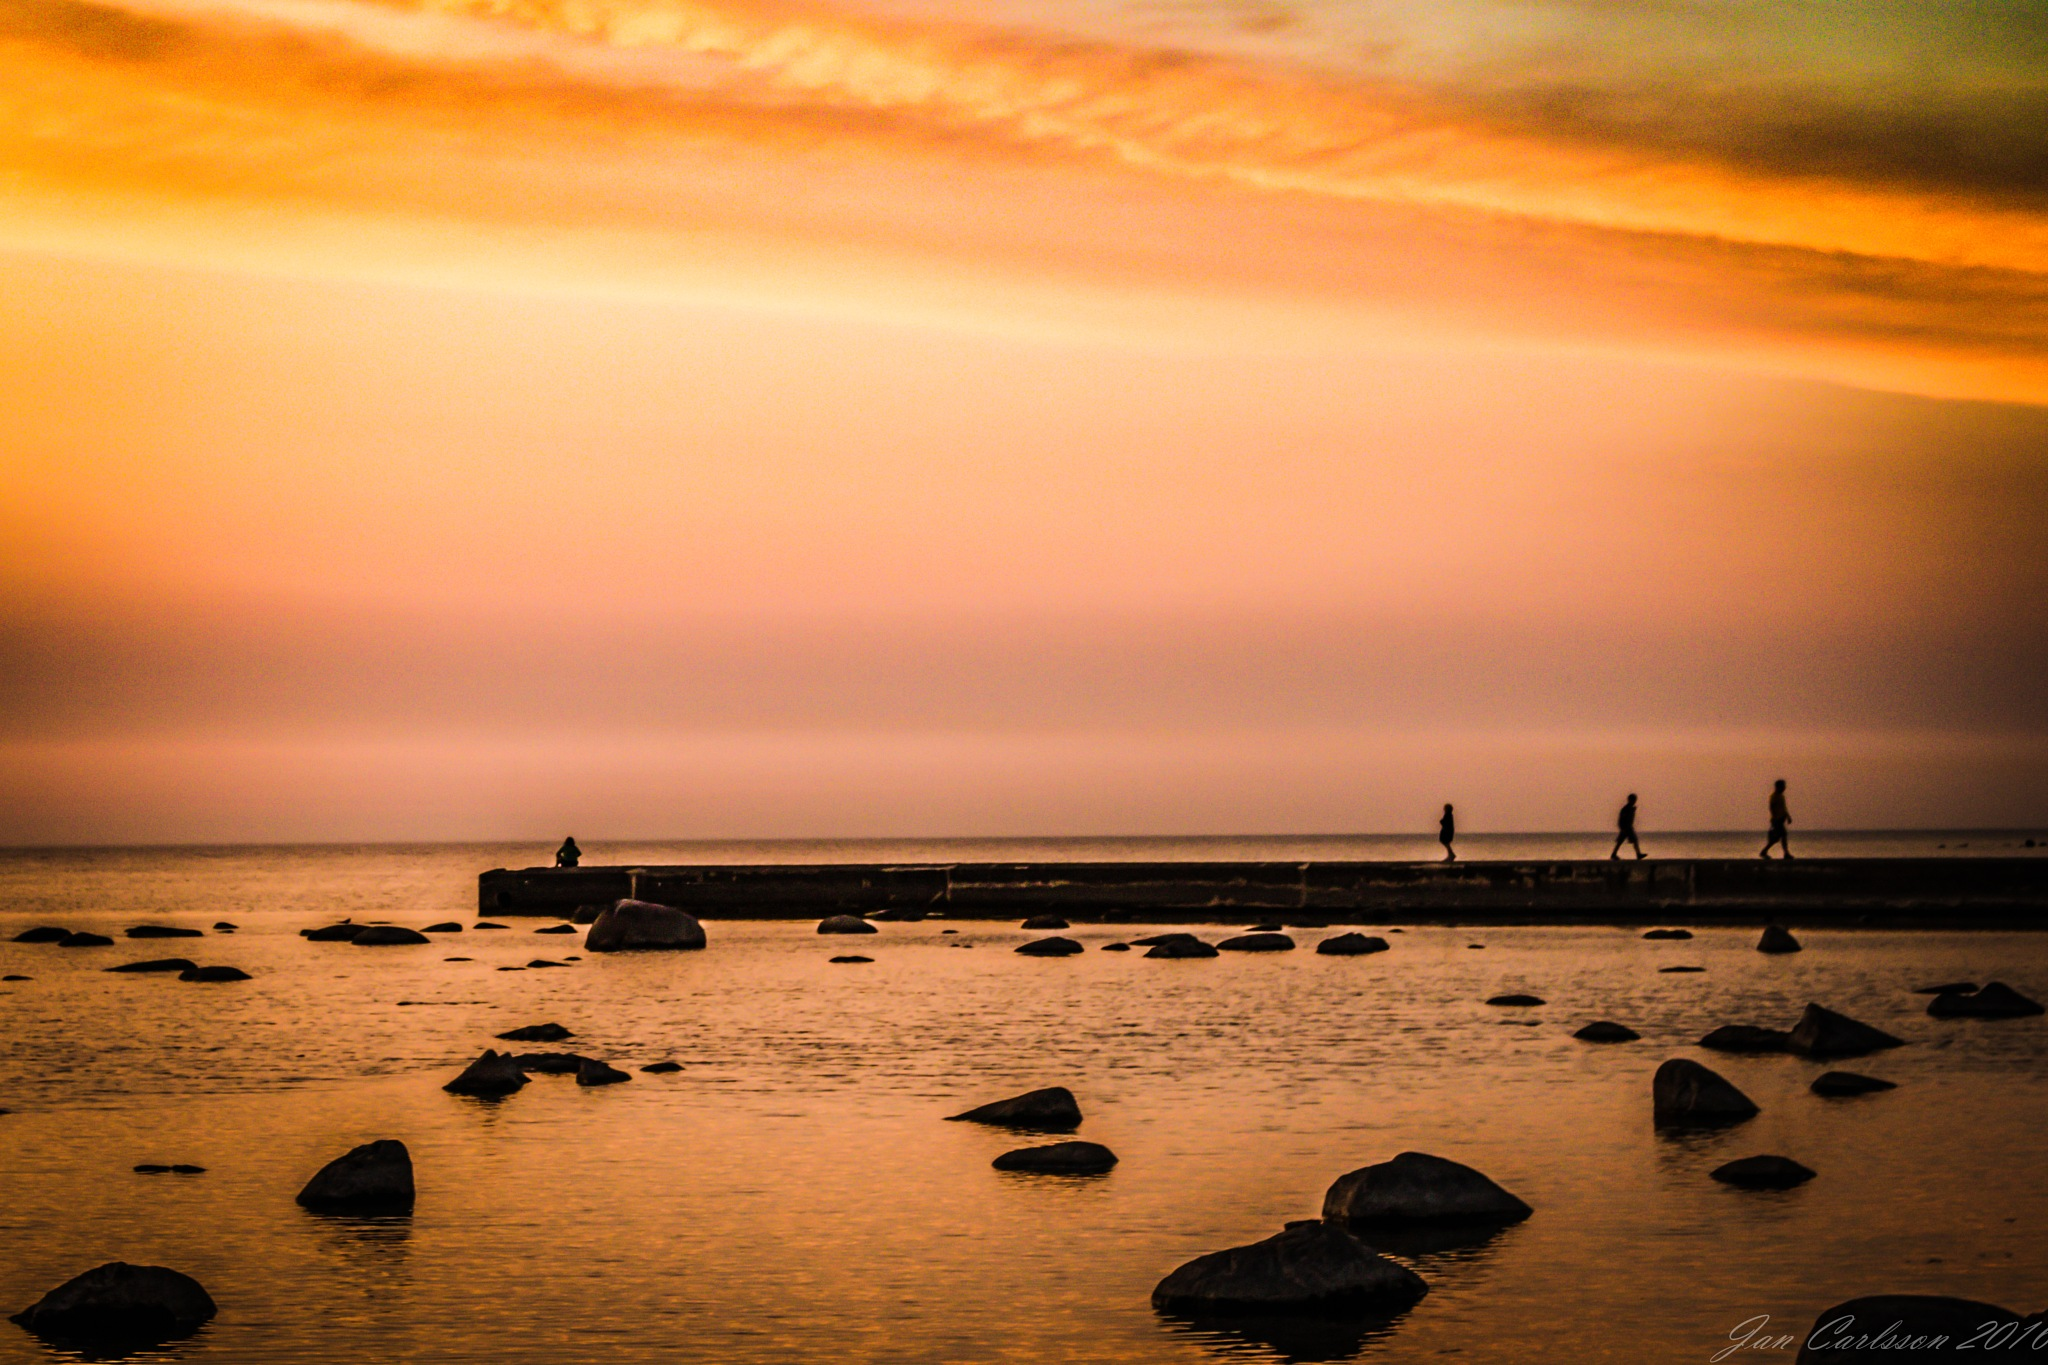 They All Love Sunsets by carljan w carlsson